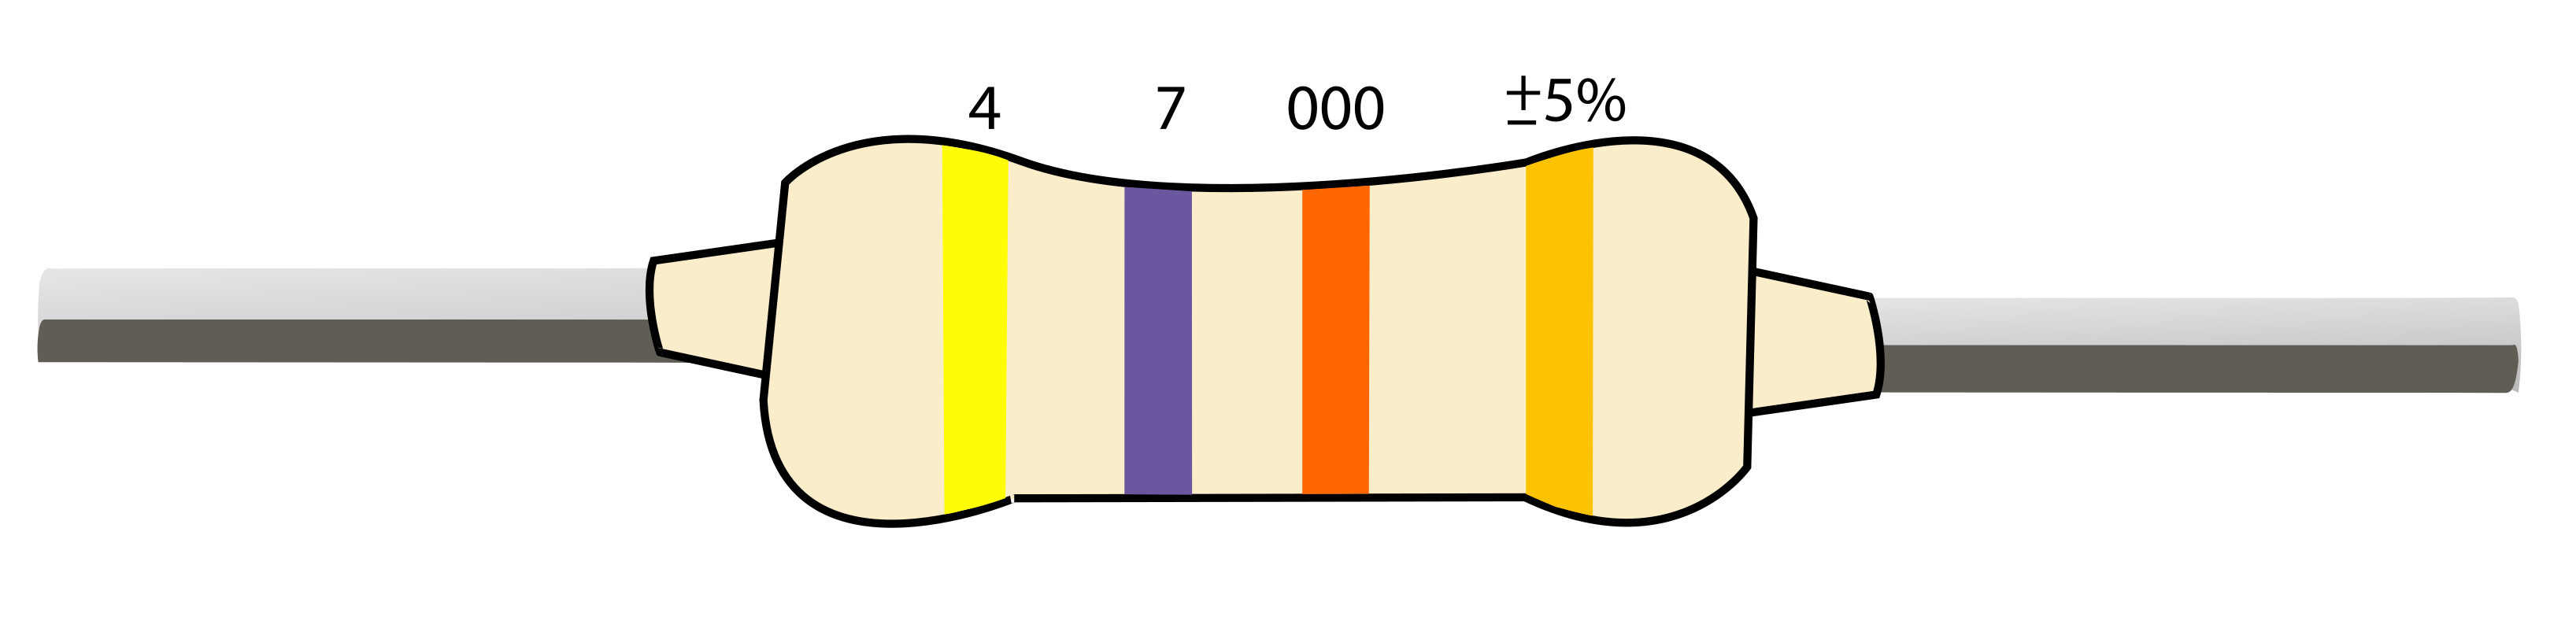 Resistor Color Codes Finding Resistor Values – Sample Resistor Color Code Chart